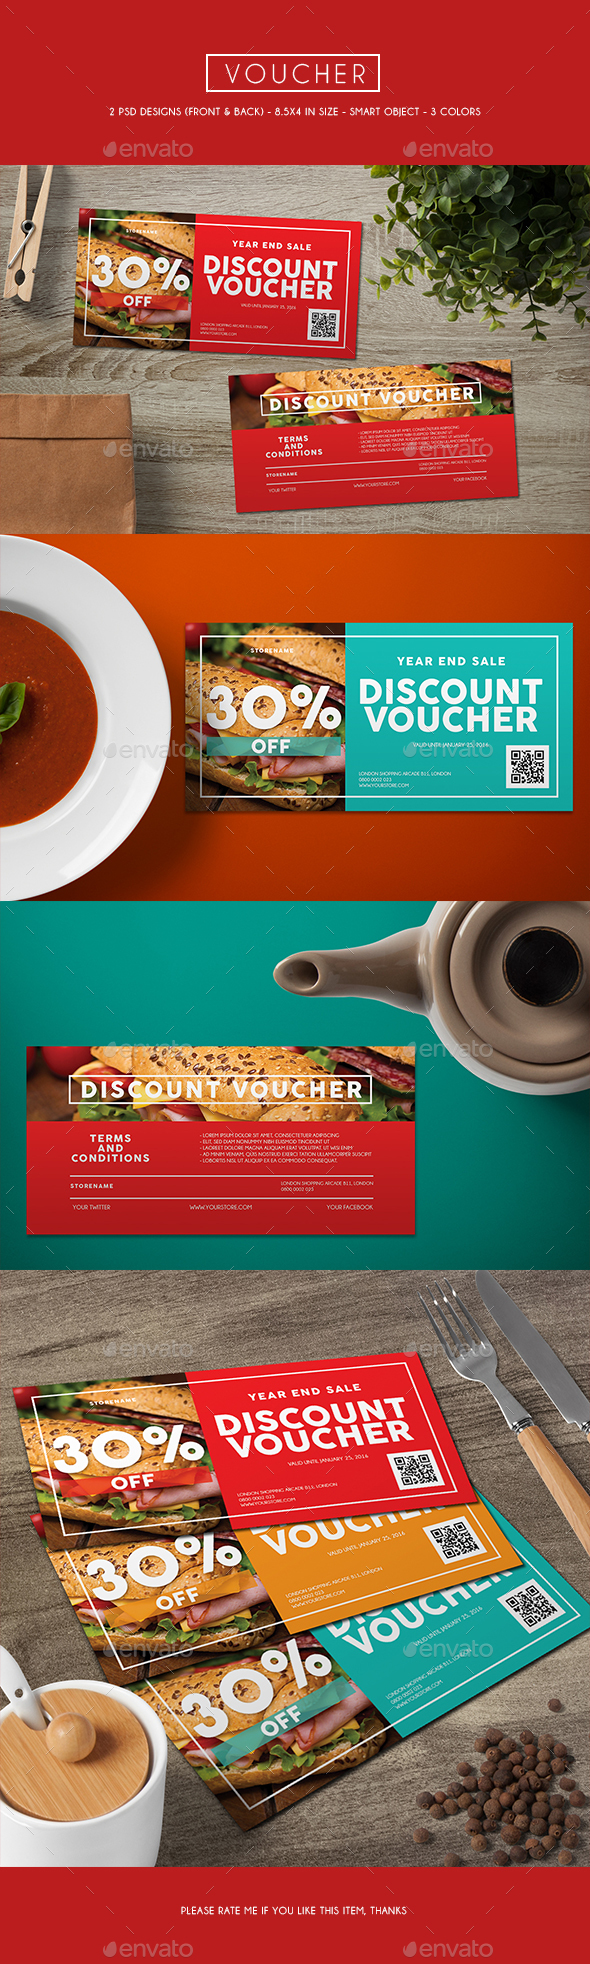 Voucher Card - Loyalty Cards Cards & Invites